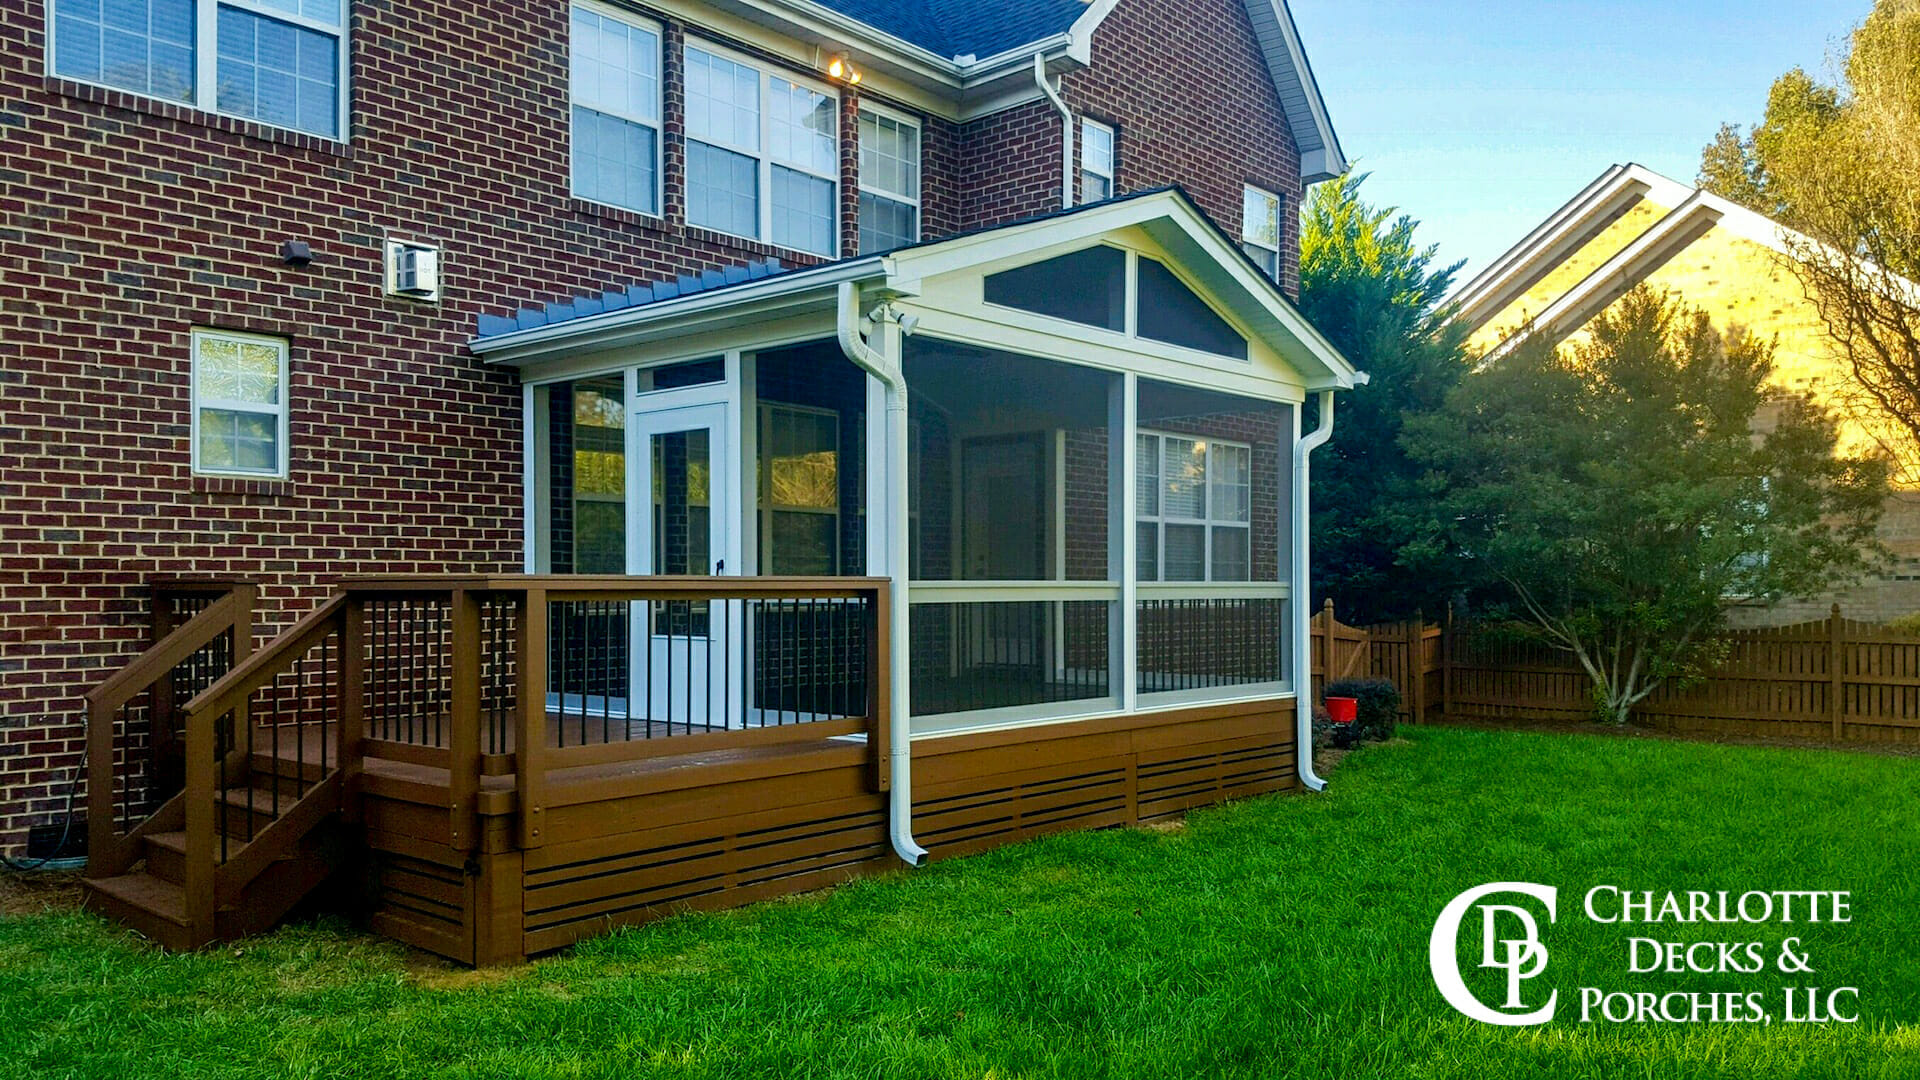 Screened Porch Photos Charlotte Decks And Porches Llc